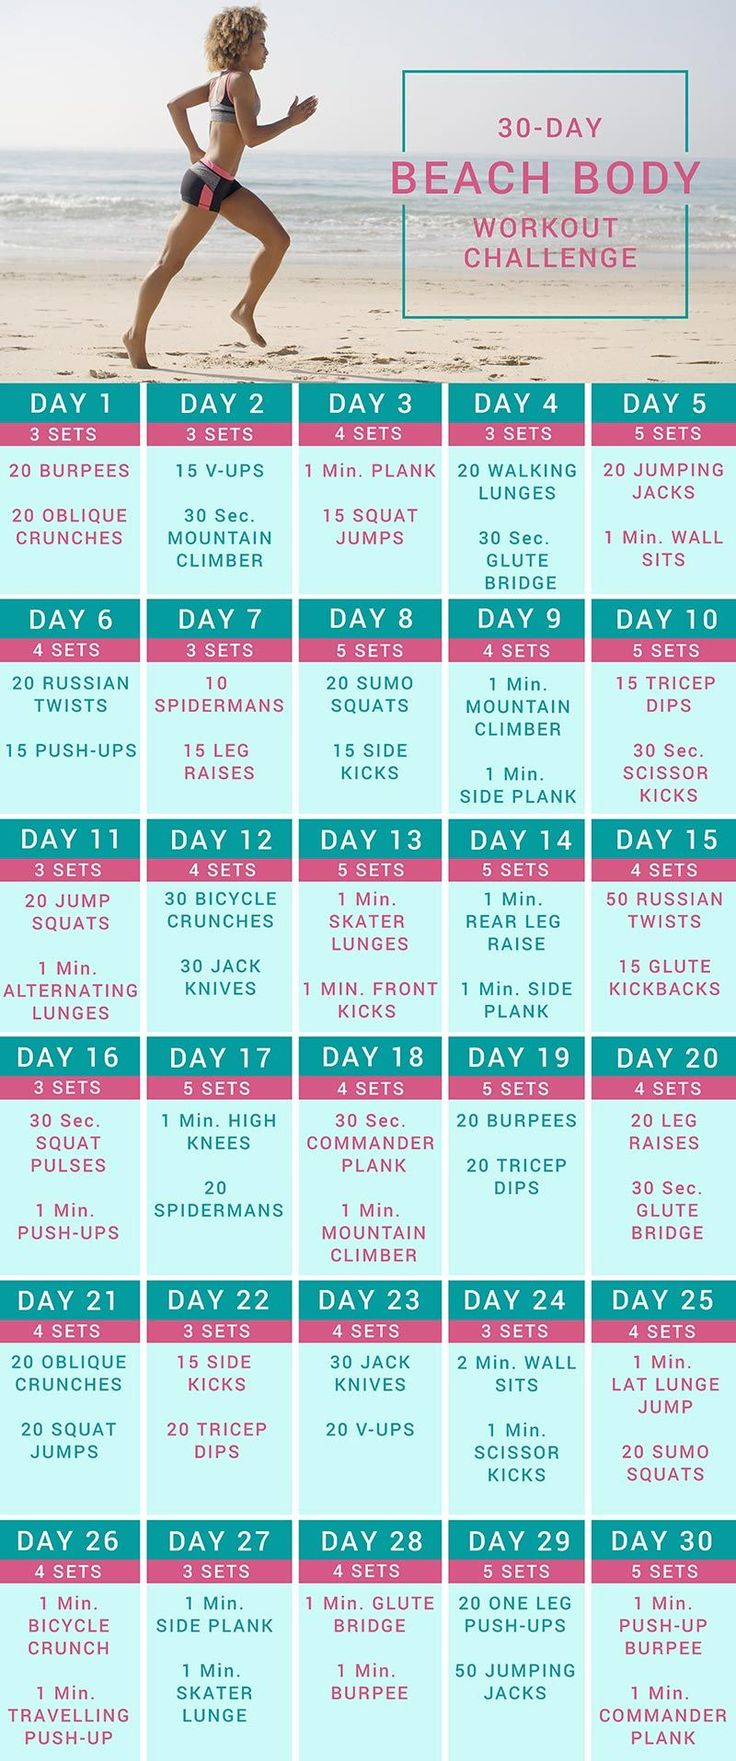 Take The 30-Day Beach Body Challenge!25 Day Beach Body Challenge | Fitness Republic